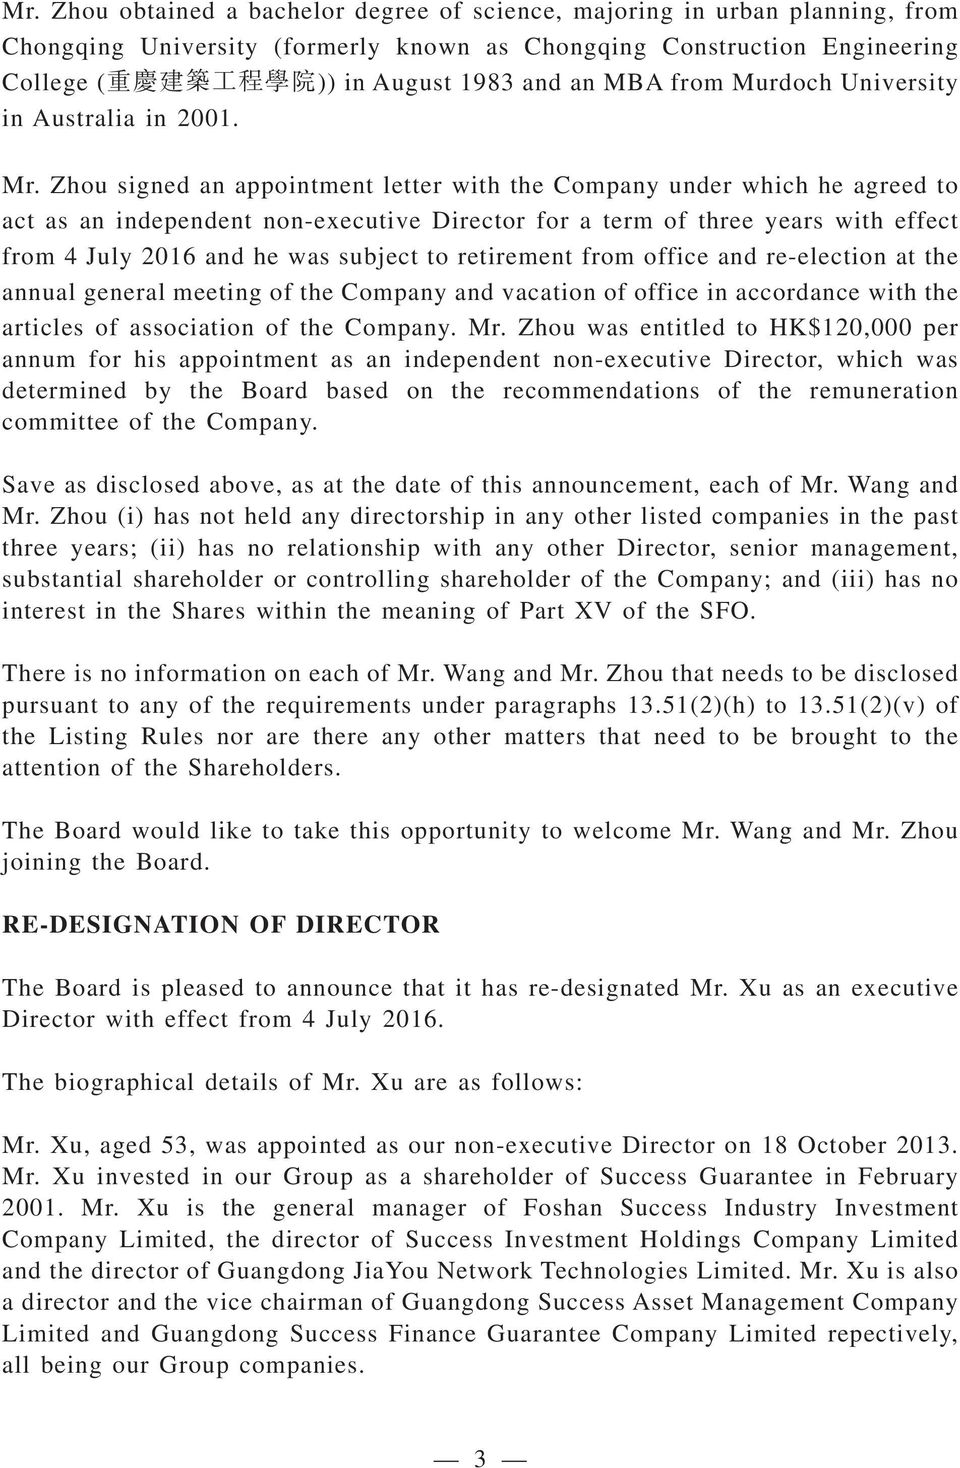 Zhou signed an appointment letter with the Company under which he agreed to act as an independent non-executive Director for a term of three years with effect from 4 July 2016 and he was subject to